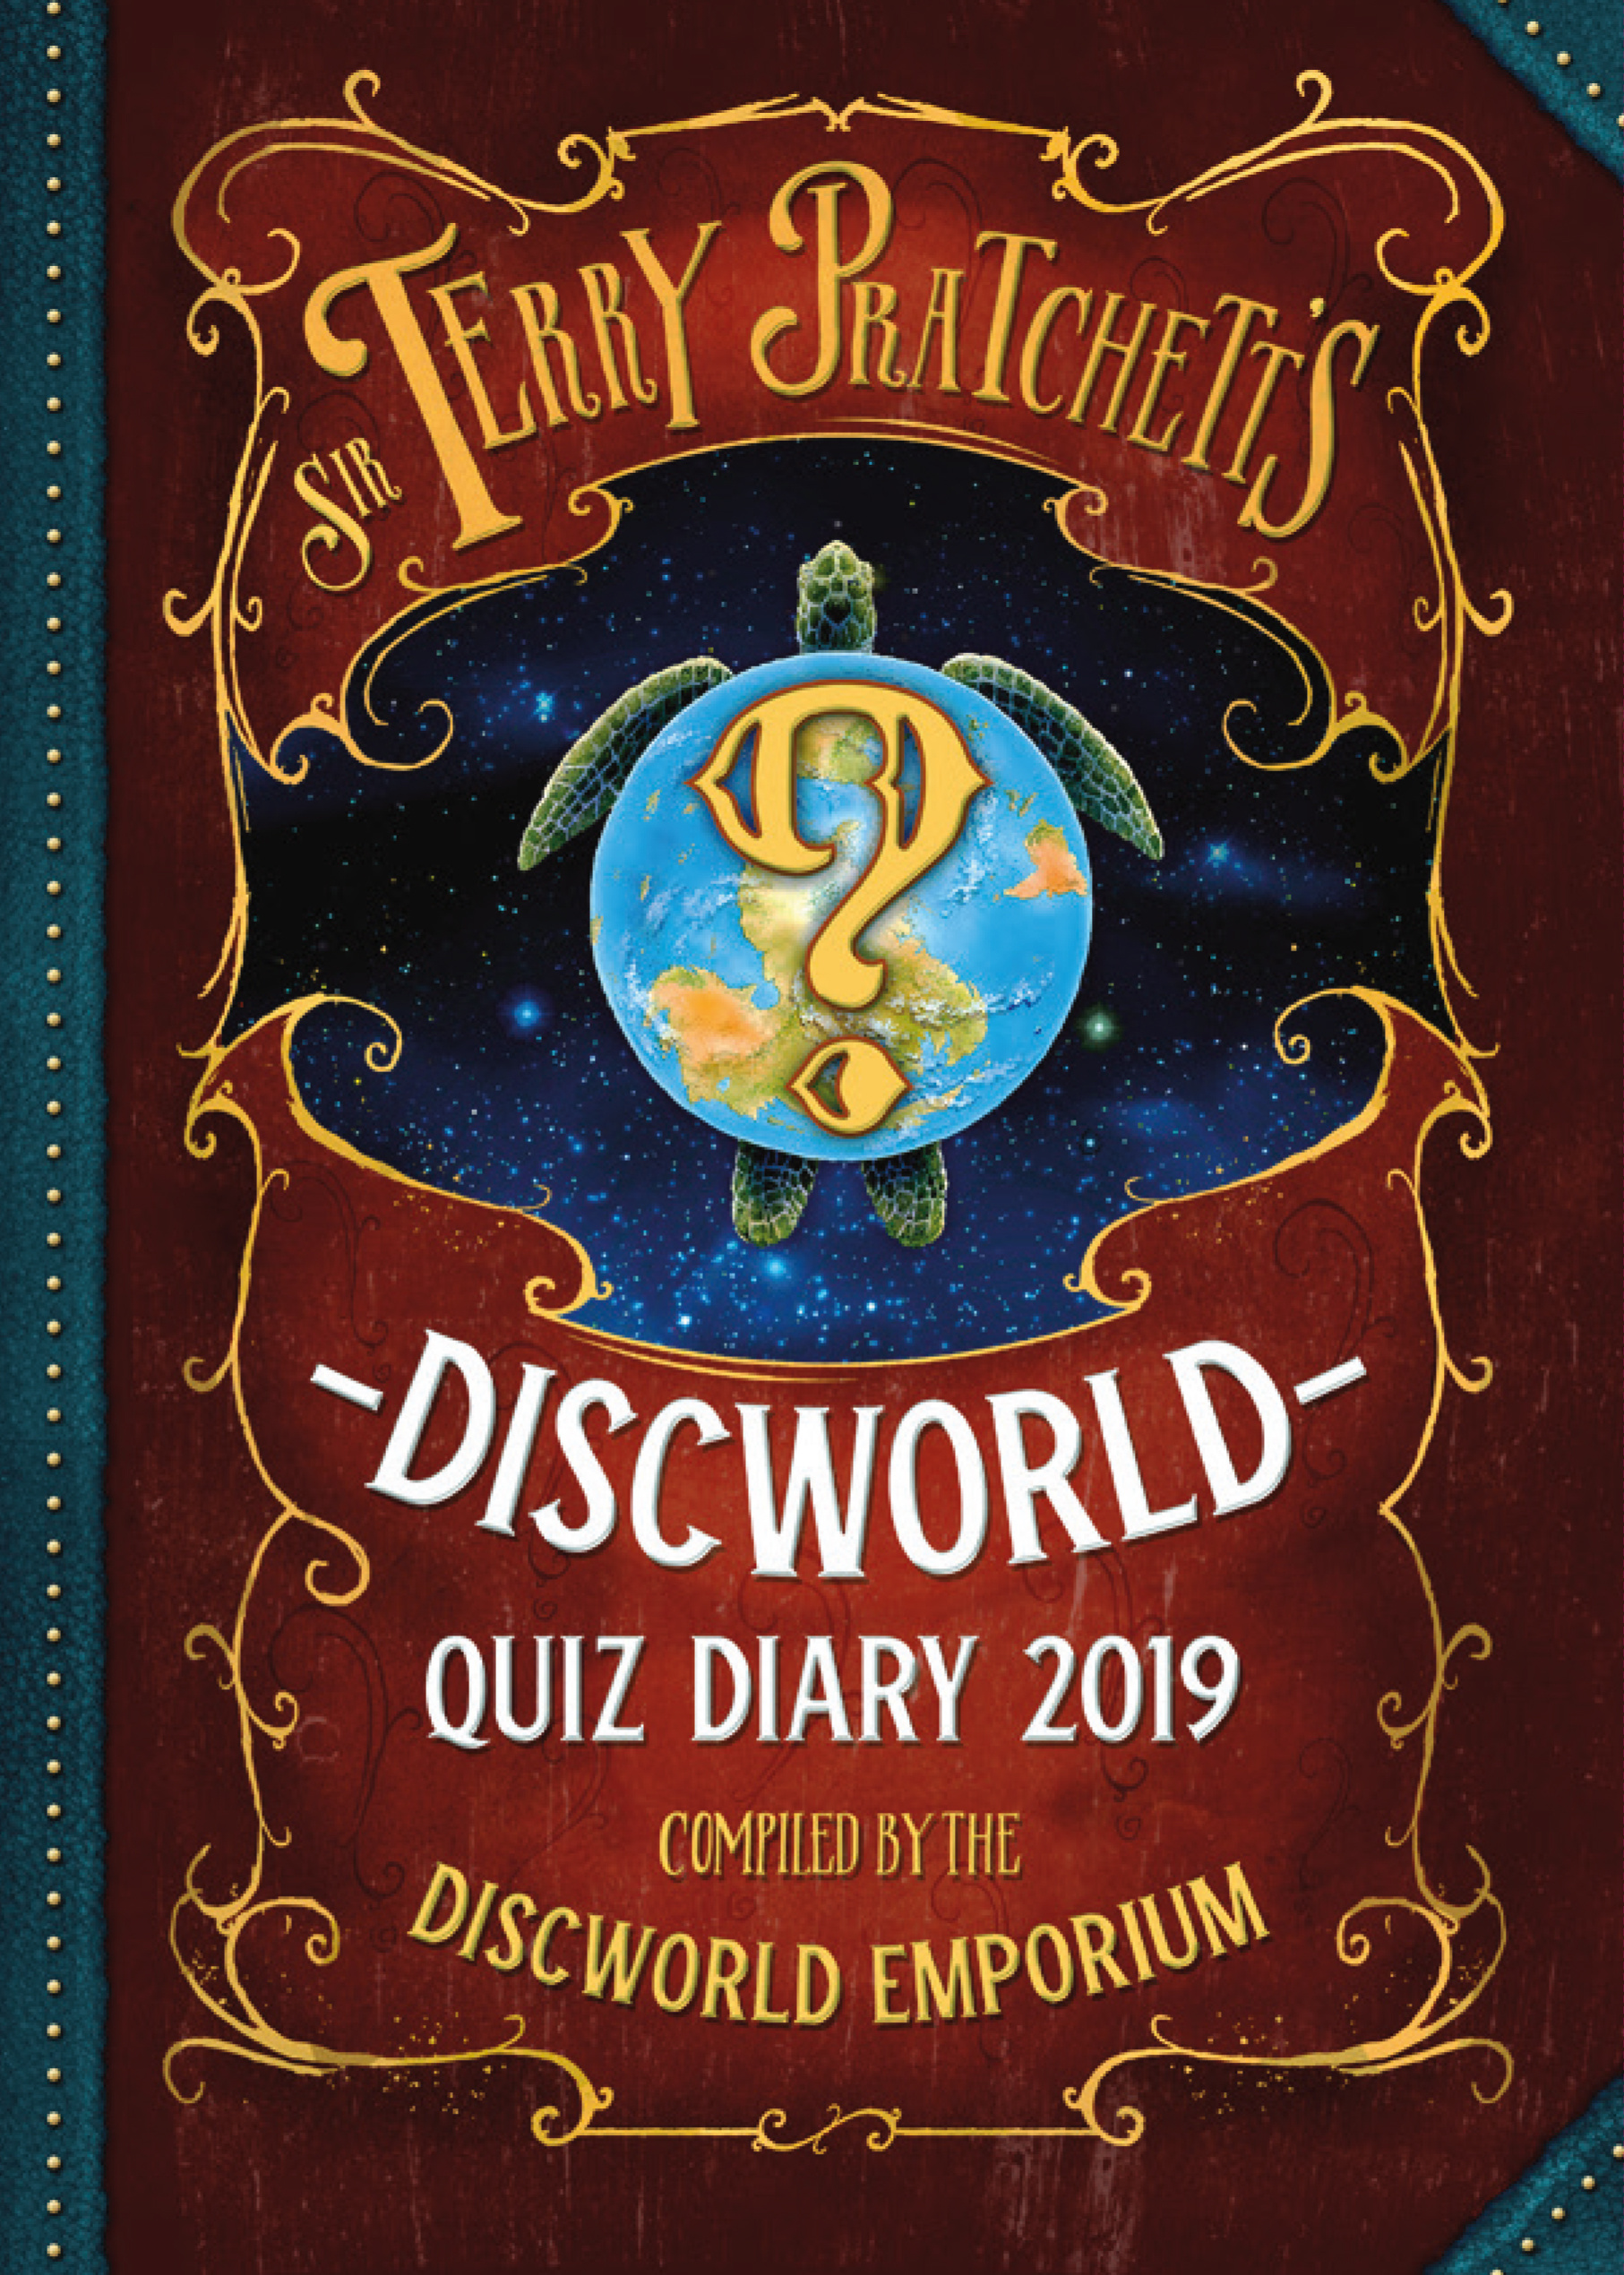 Sir Terry Pratchett's Discworld Quiz Diary 2019